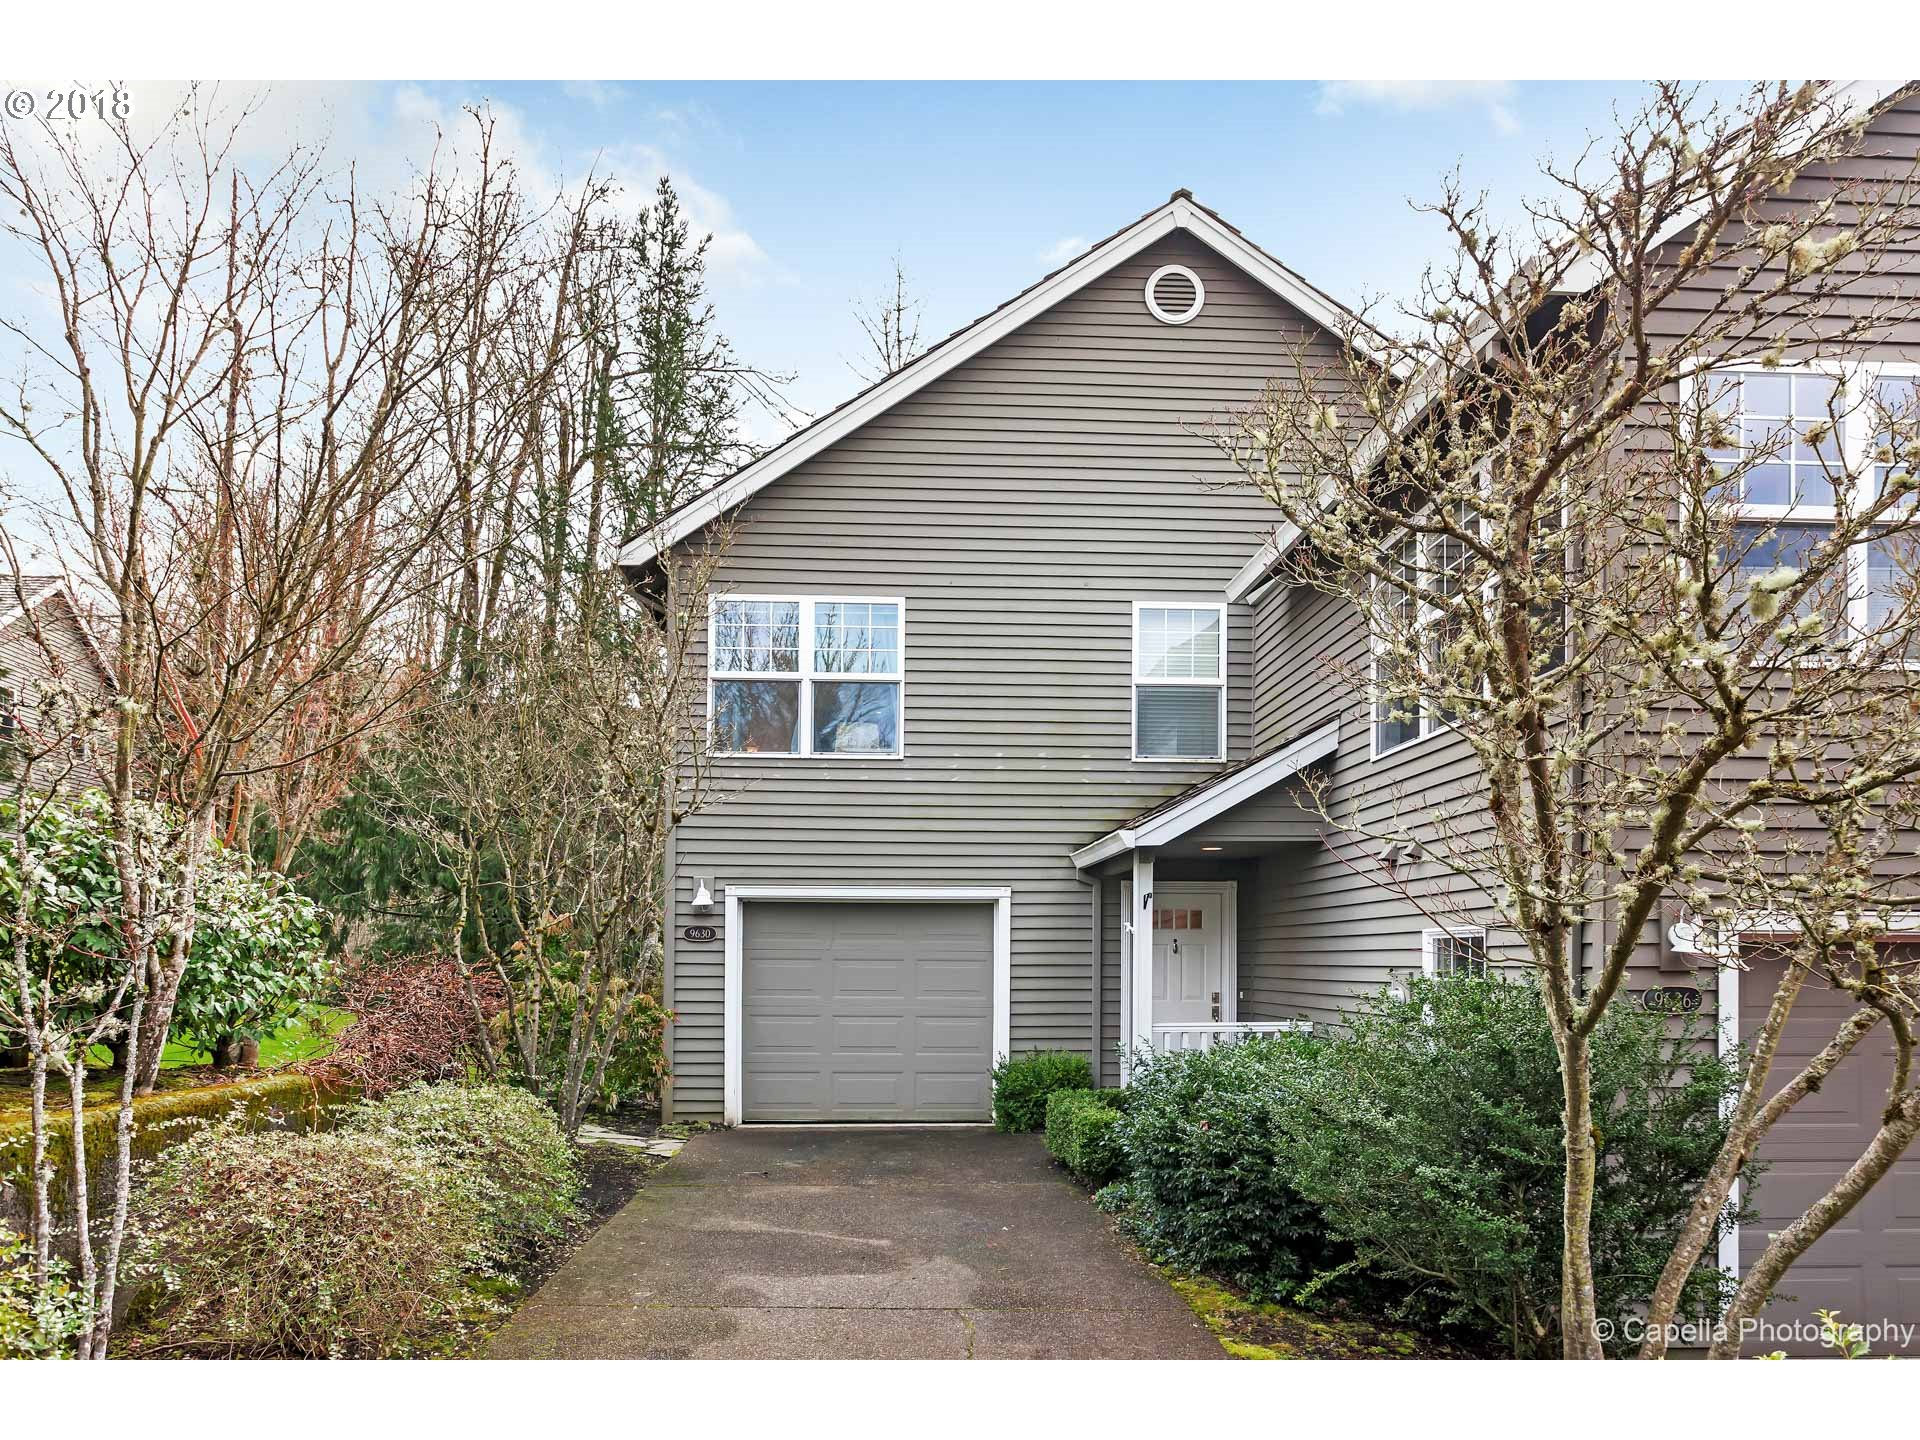 2182 sq. ft 2 bedrooms 1 bathrooms  House ,Portland, OR